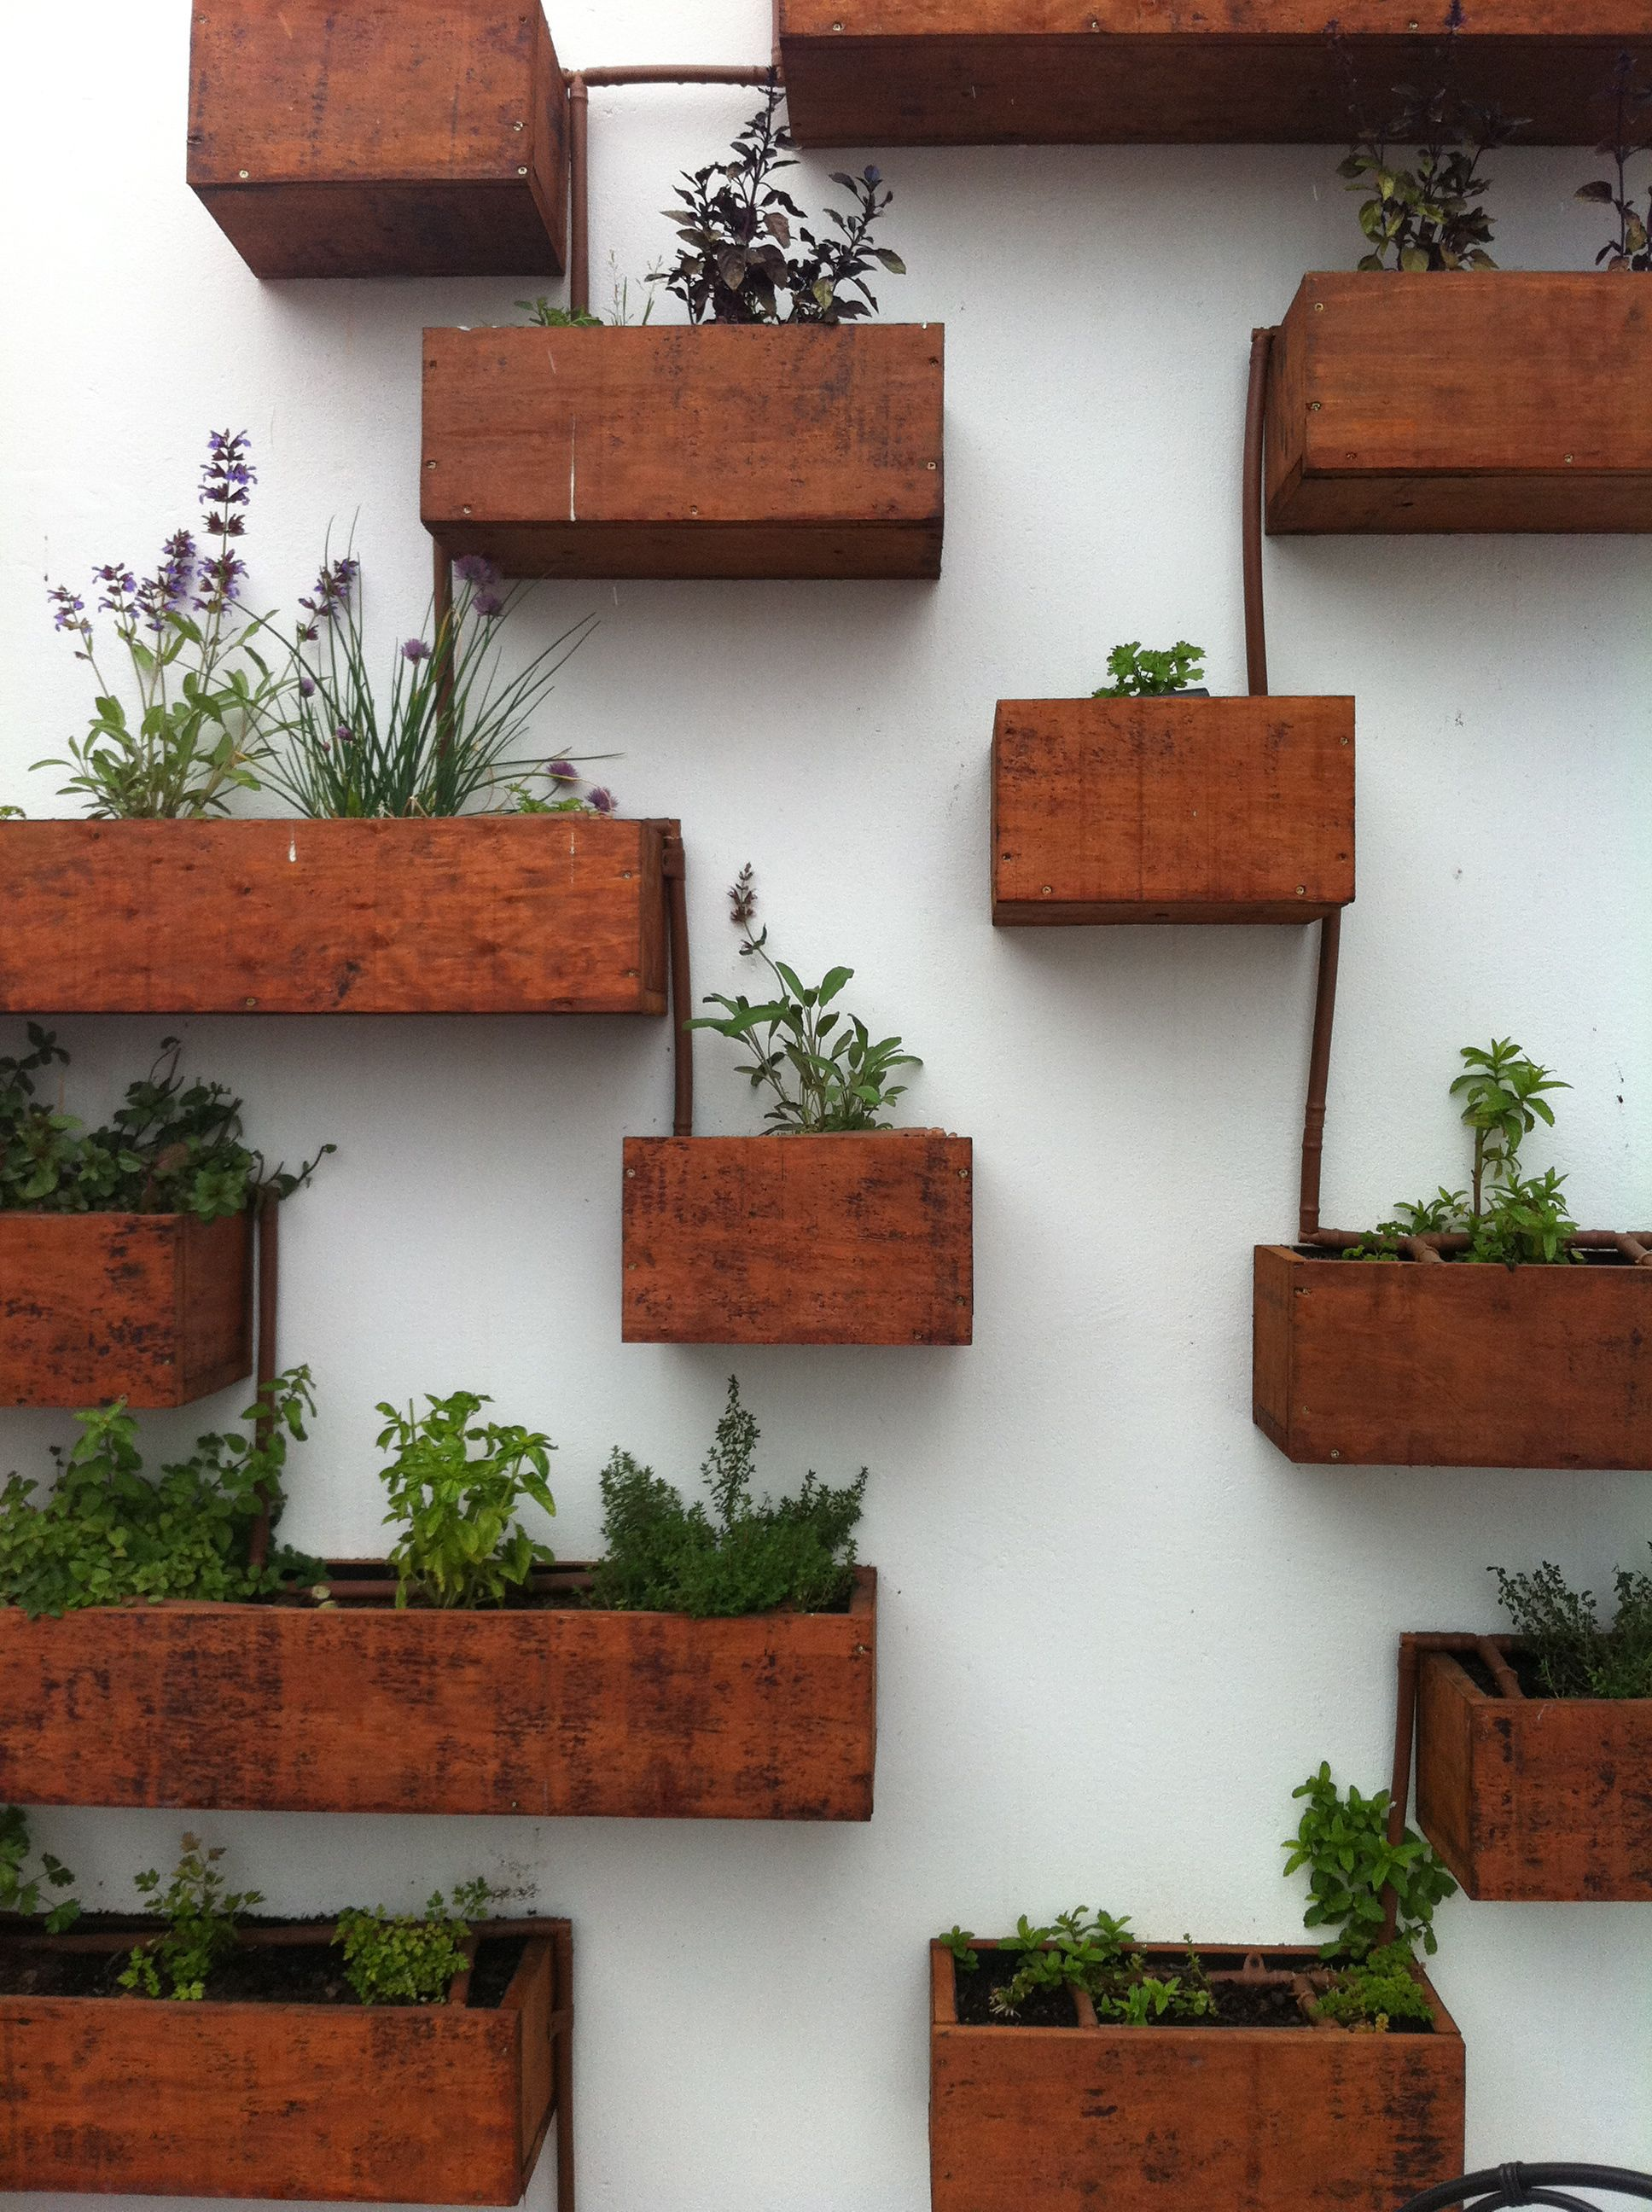 grow your own | planters, dining room walls and walls